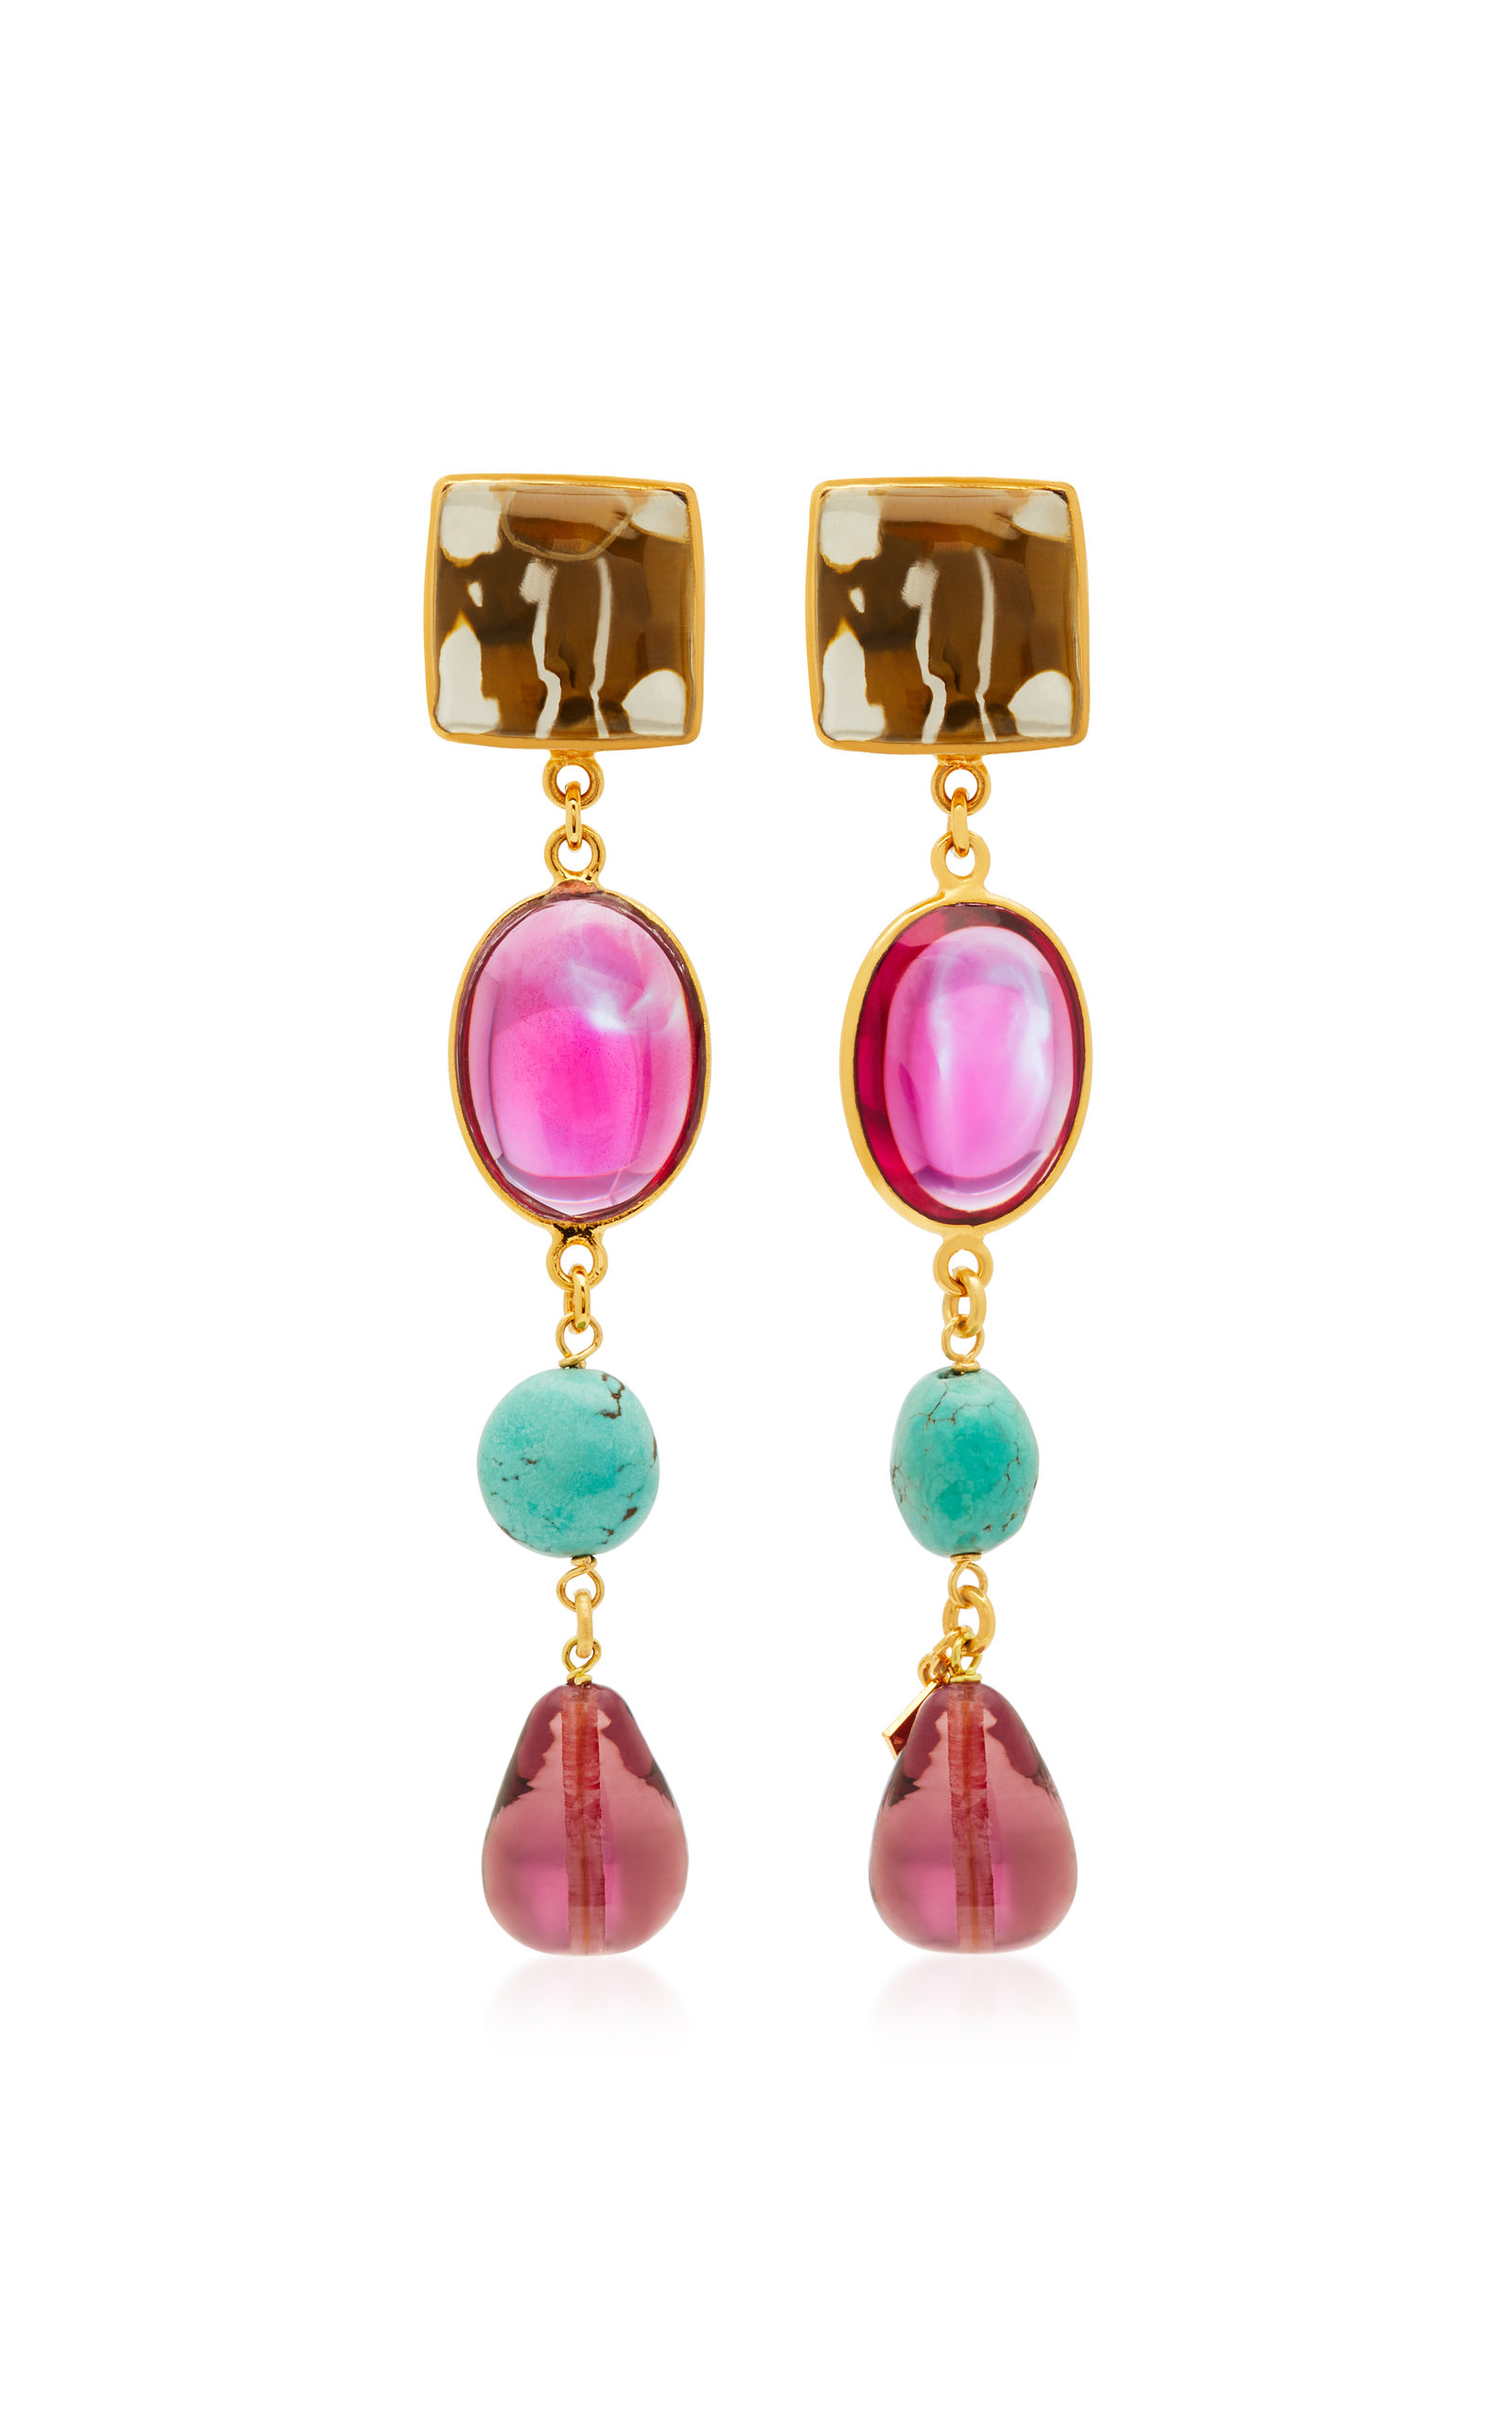 LOULOU DE LA FALAISE 24K GOLD-PLATED STONE AND TURQUOISE